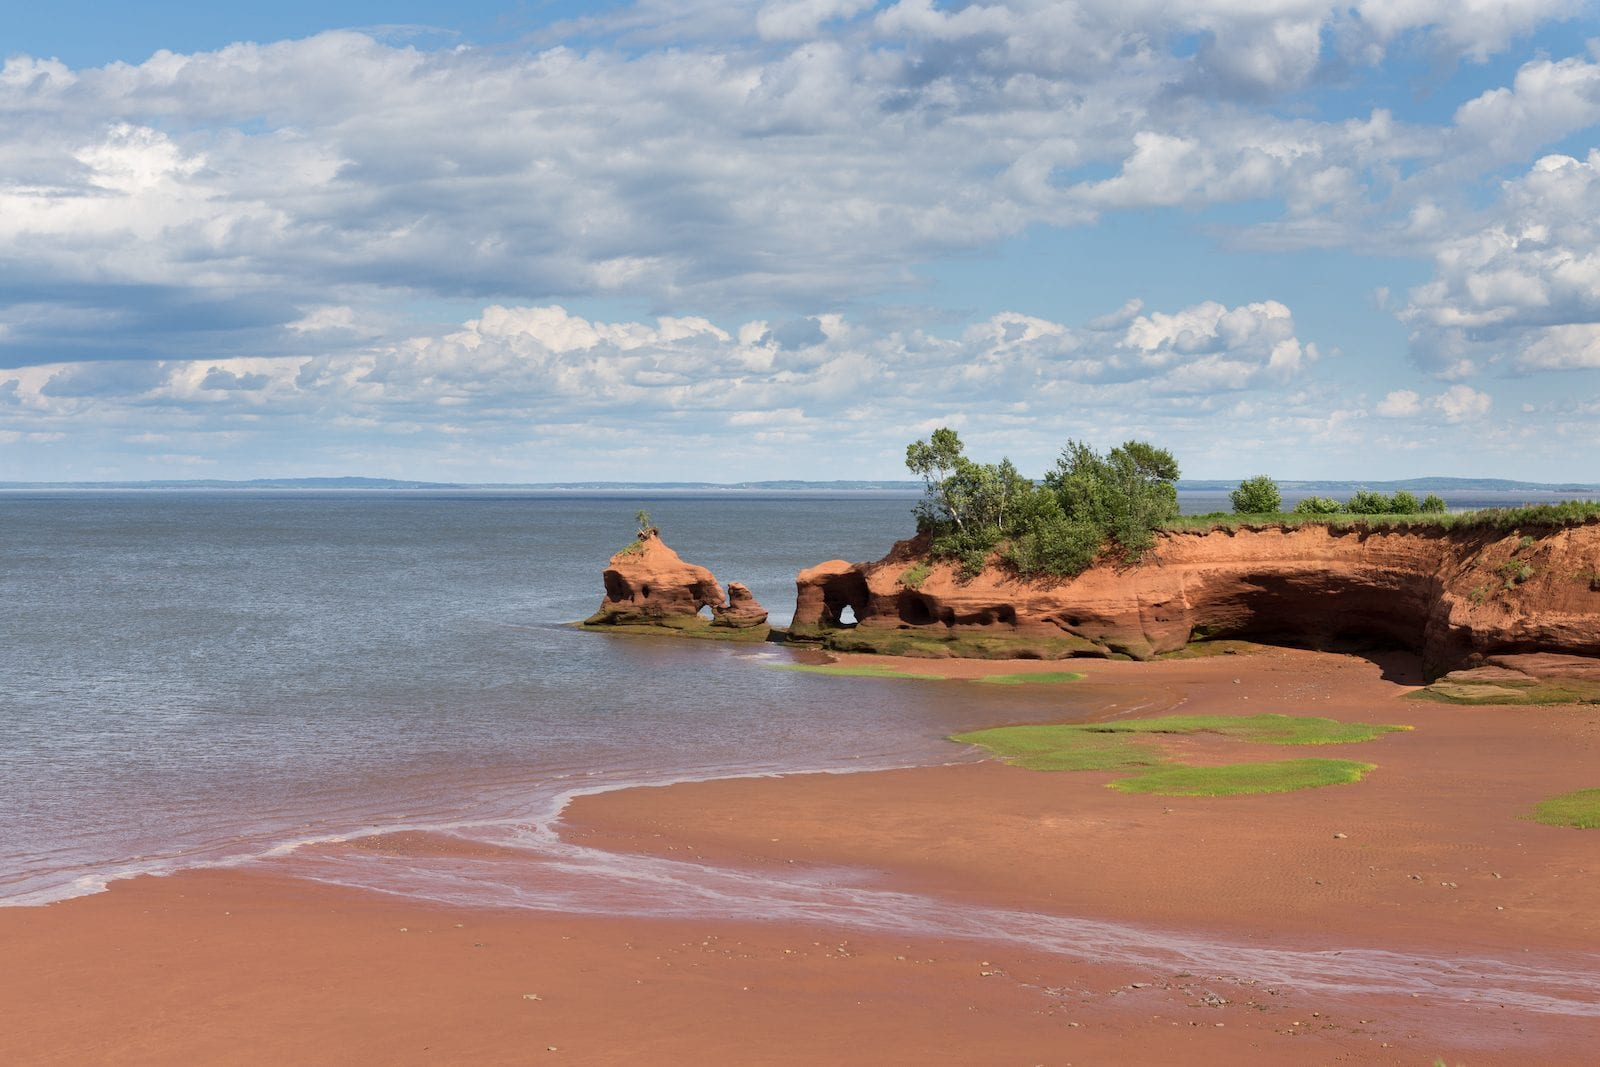 Bay of Fundy, Canada